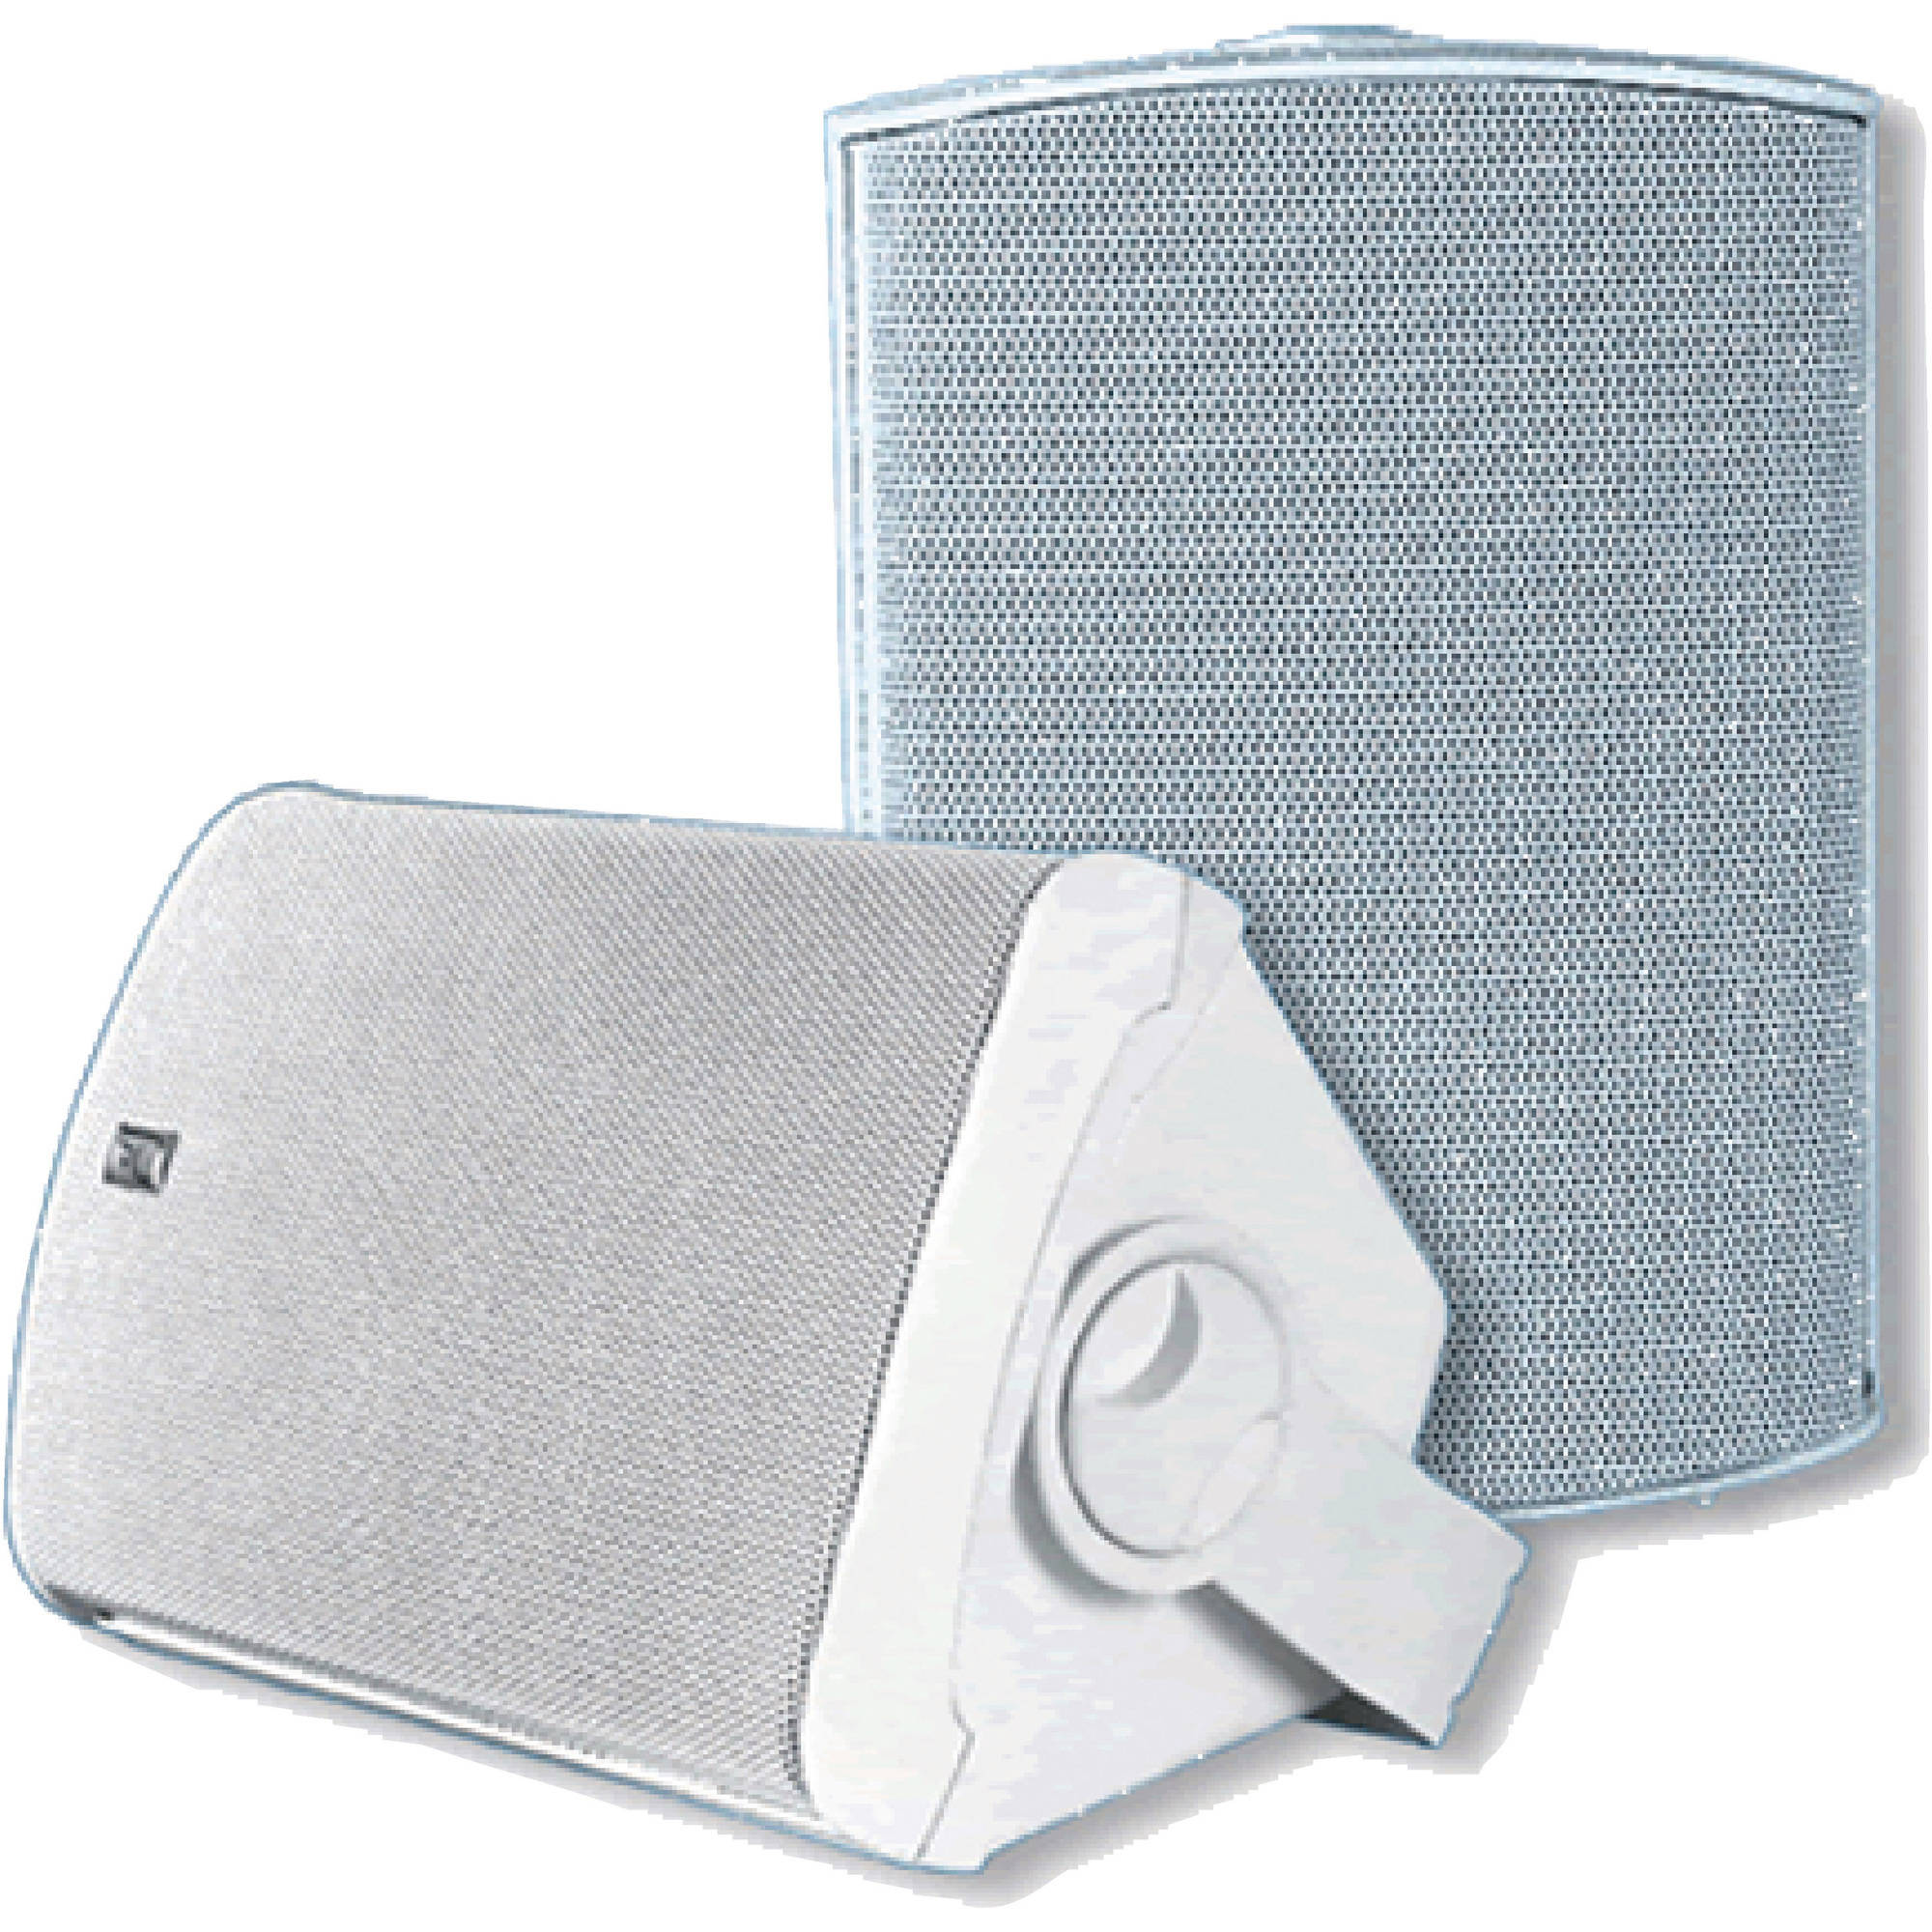 """Poly-Planar MA7500 Waterproof Compact Box Speakers 5-1/8"""" x 7-11/16"""" (Sold as Pair)"""